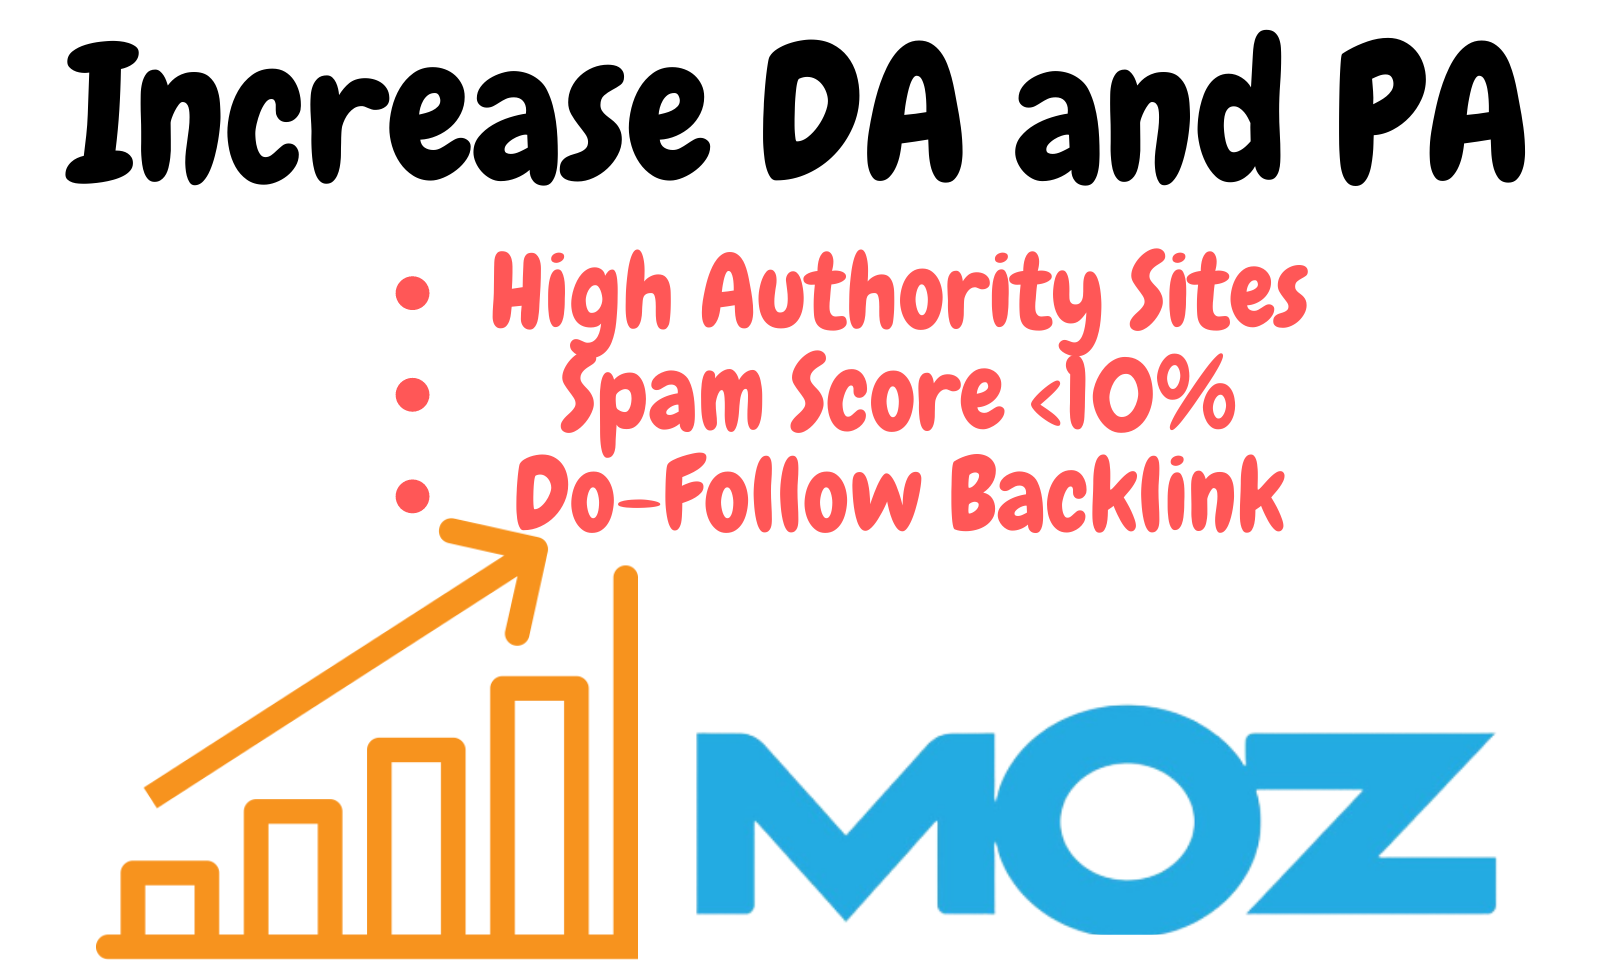 Increase MOZ DA Domain Authority PA Page Authority of your website with dofollow backlinks